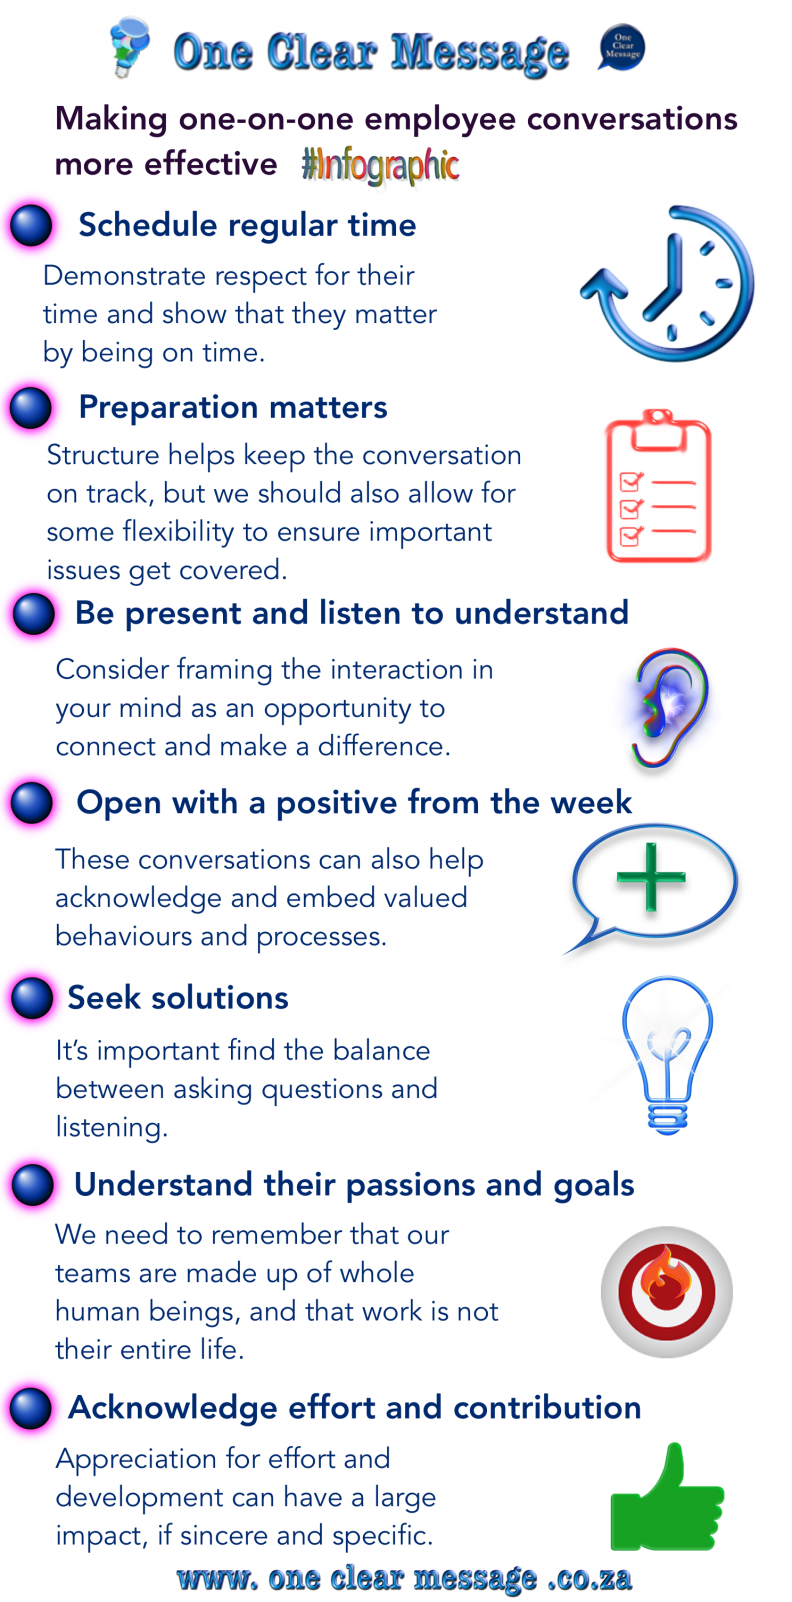 Making one-on-one employee conversations more effective infographic